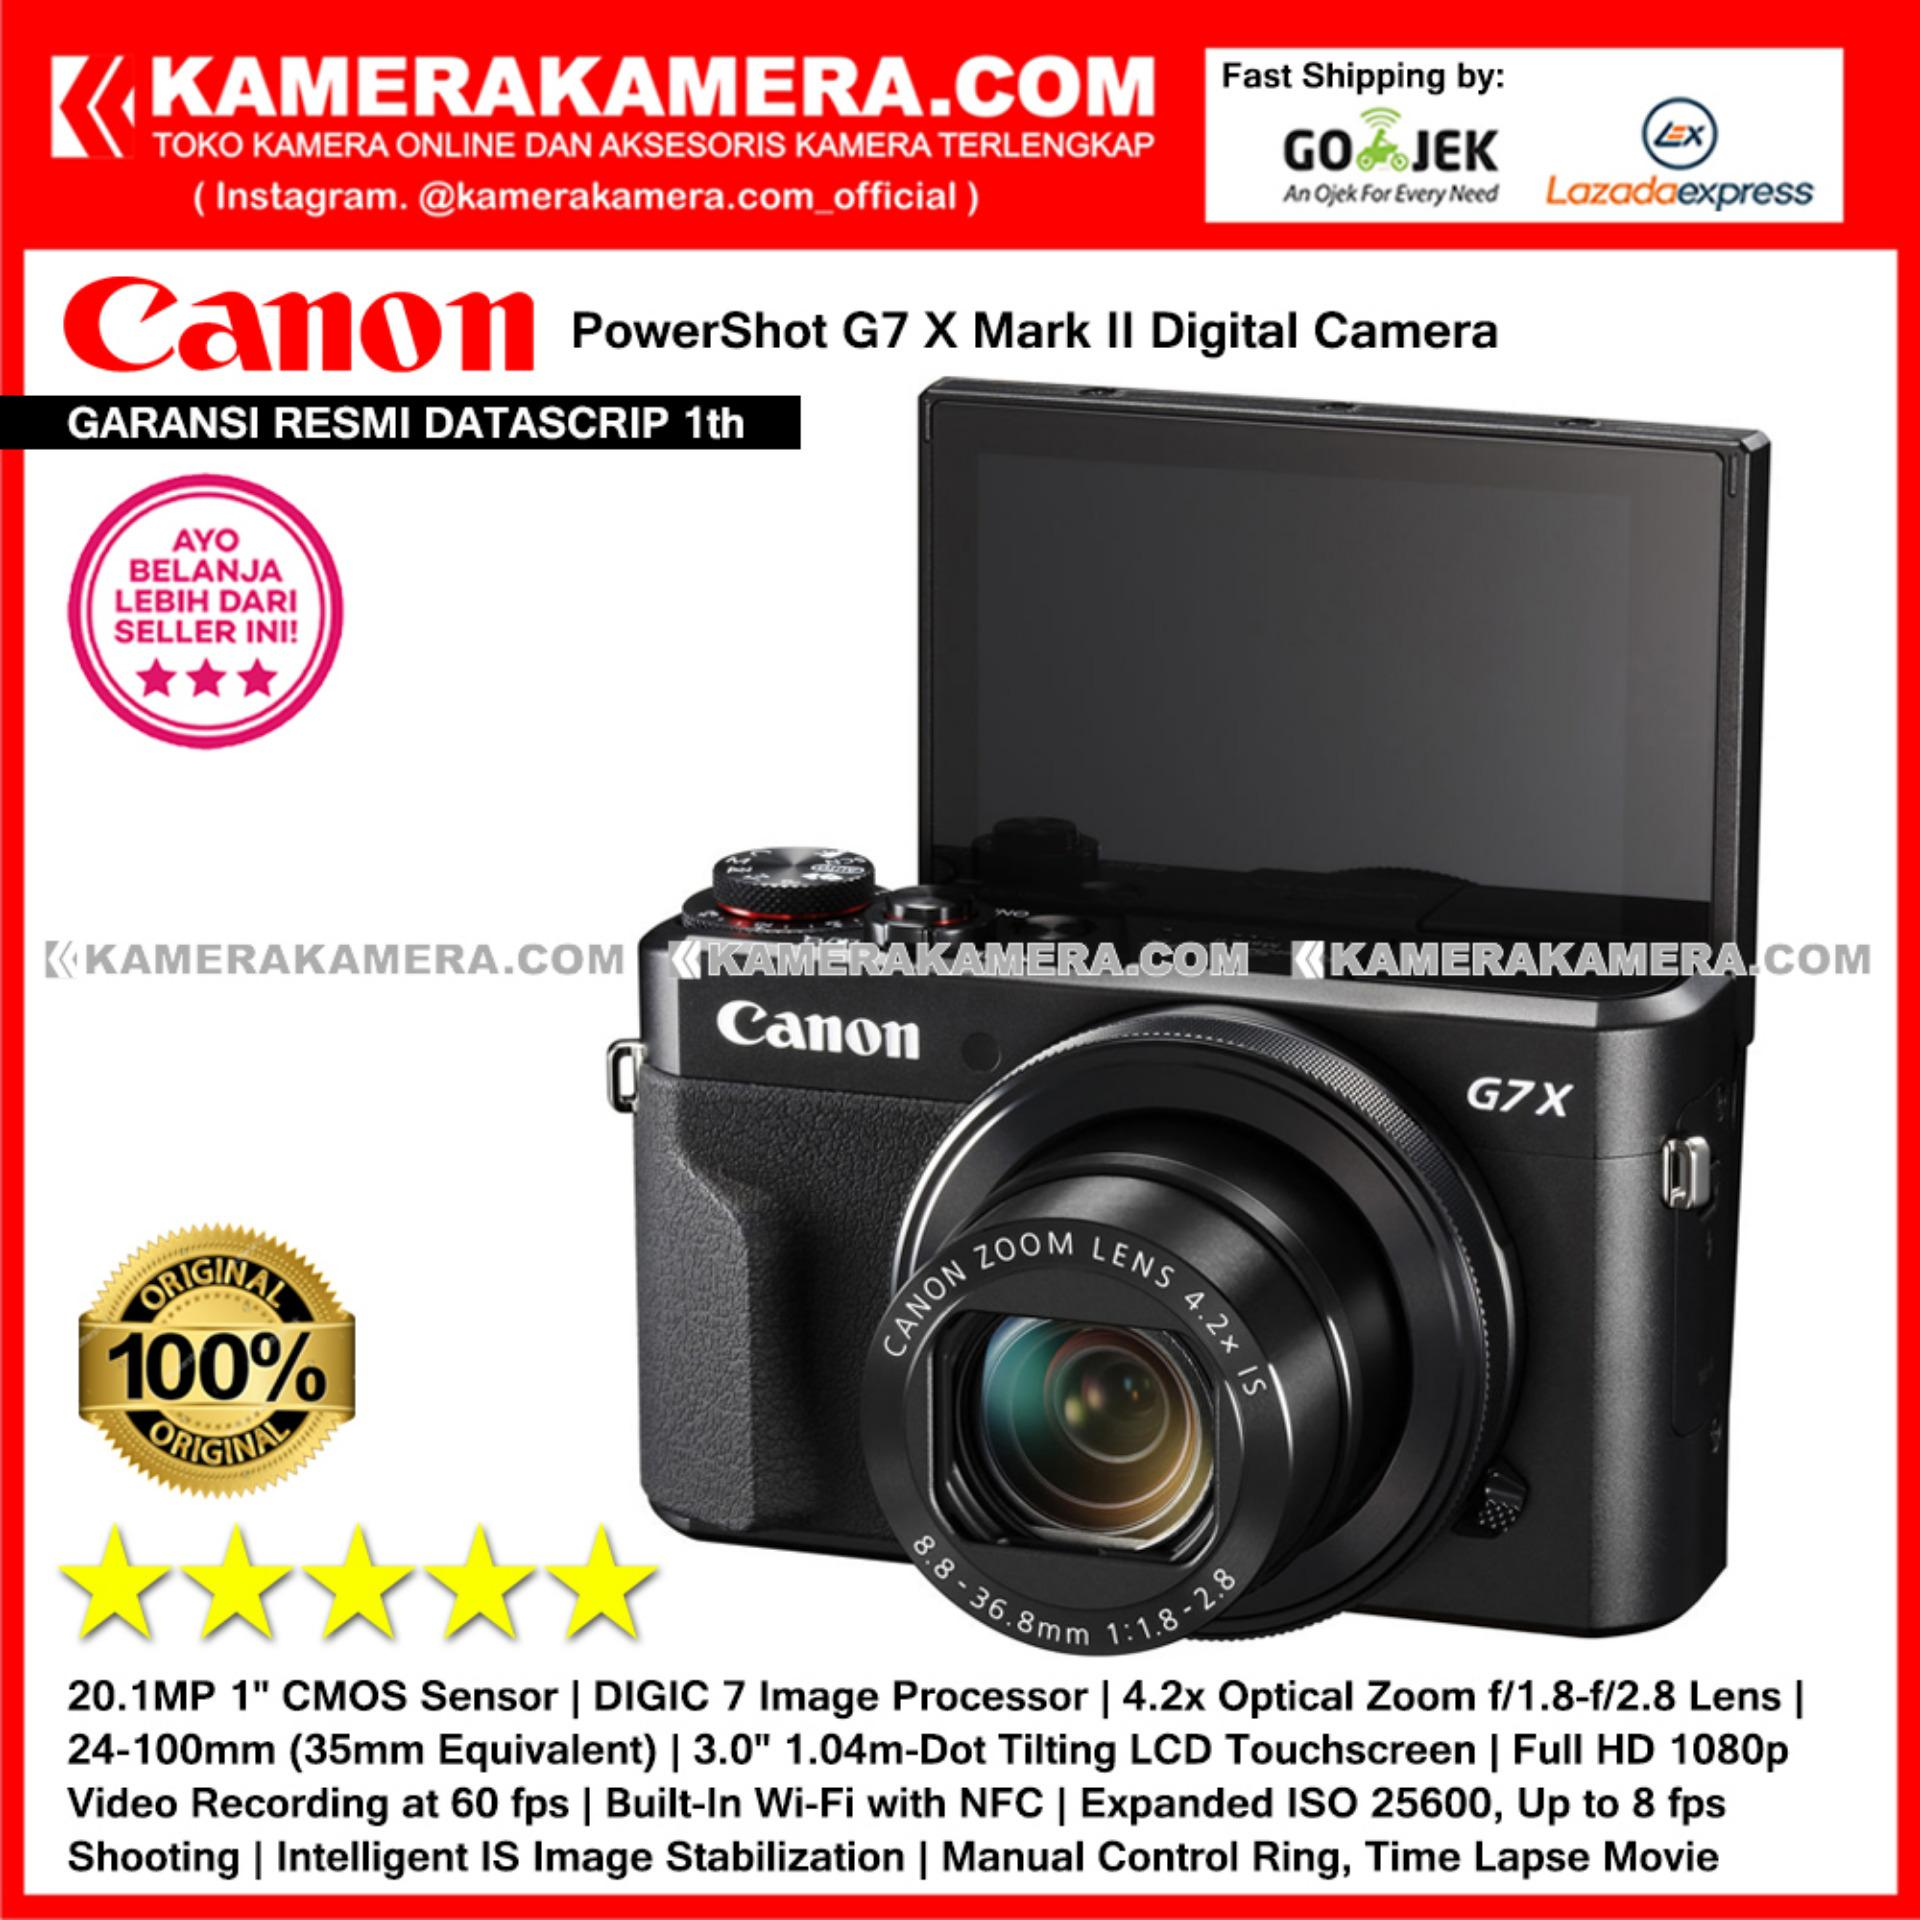 Canon Powershot G7X Mark II Kamera Pocket (Garansi Resmi Datascrip 1th) Wi-Fi 20.1 MP Tilting LCD Touchscreen